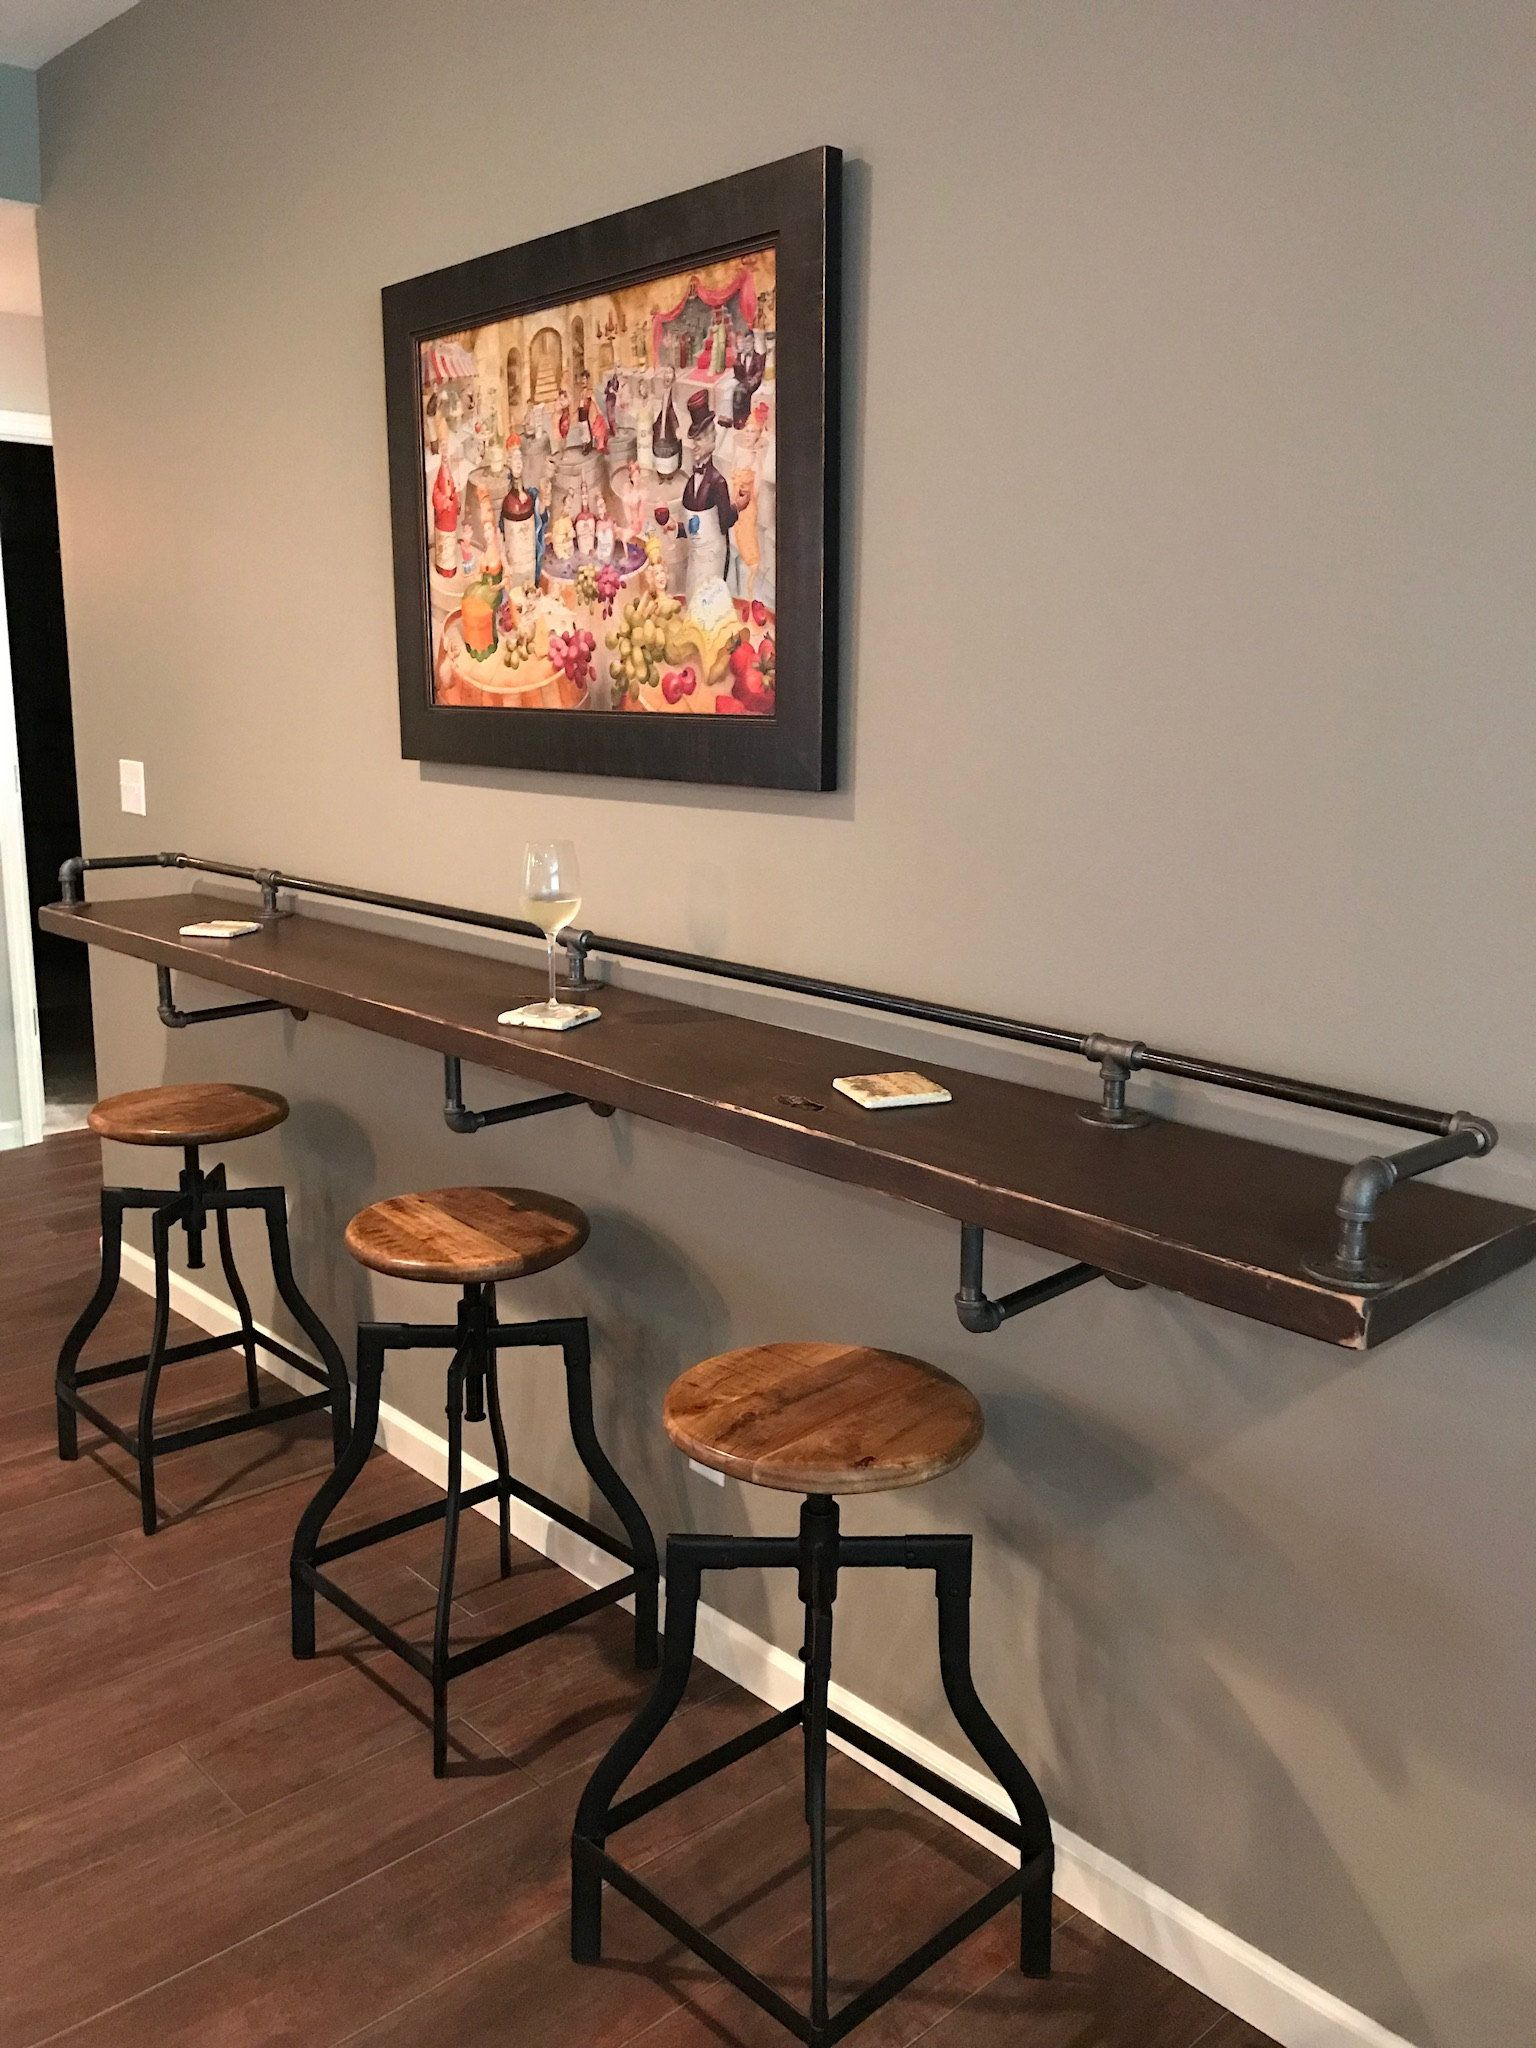 Industrial Black Pipe Drink Rail With Shelf Support Brackets Diy